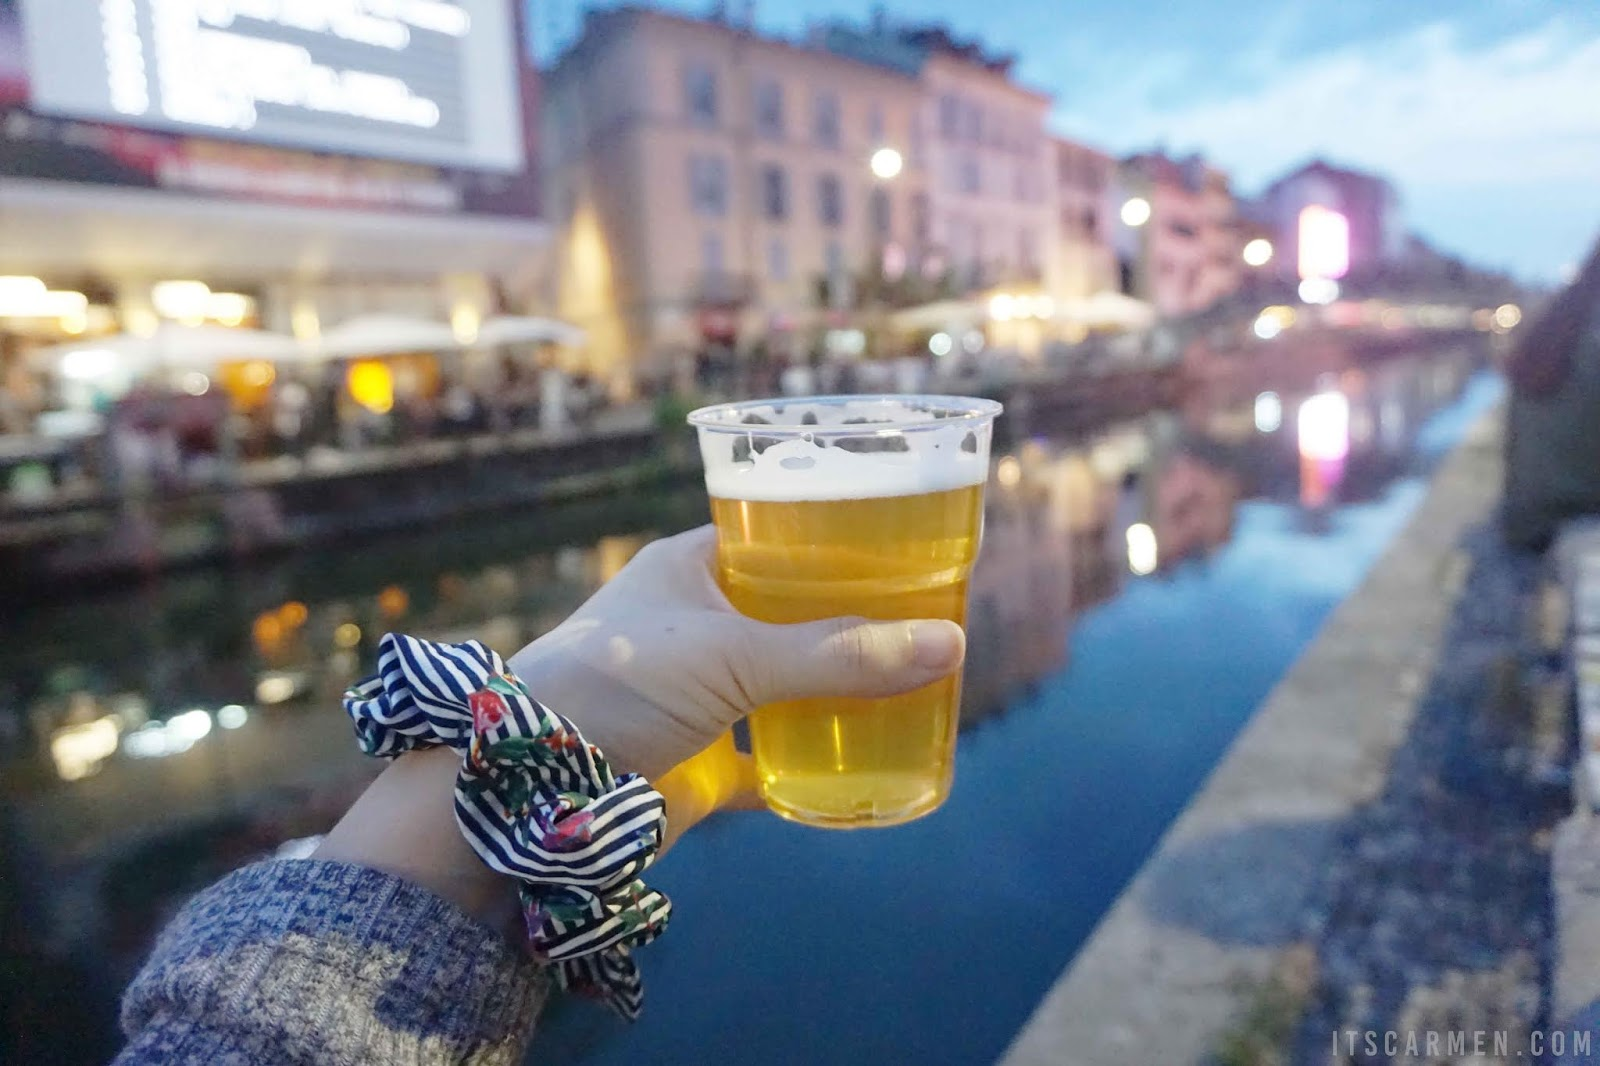 Sipping on Pico Brew by Navigli at sunset in Milan, Italy highlights